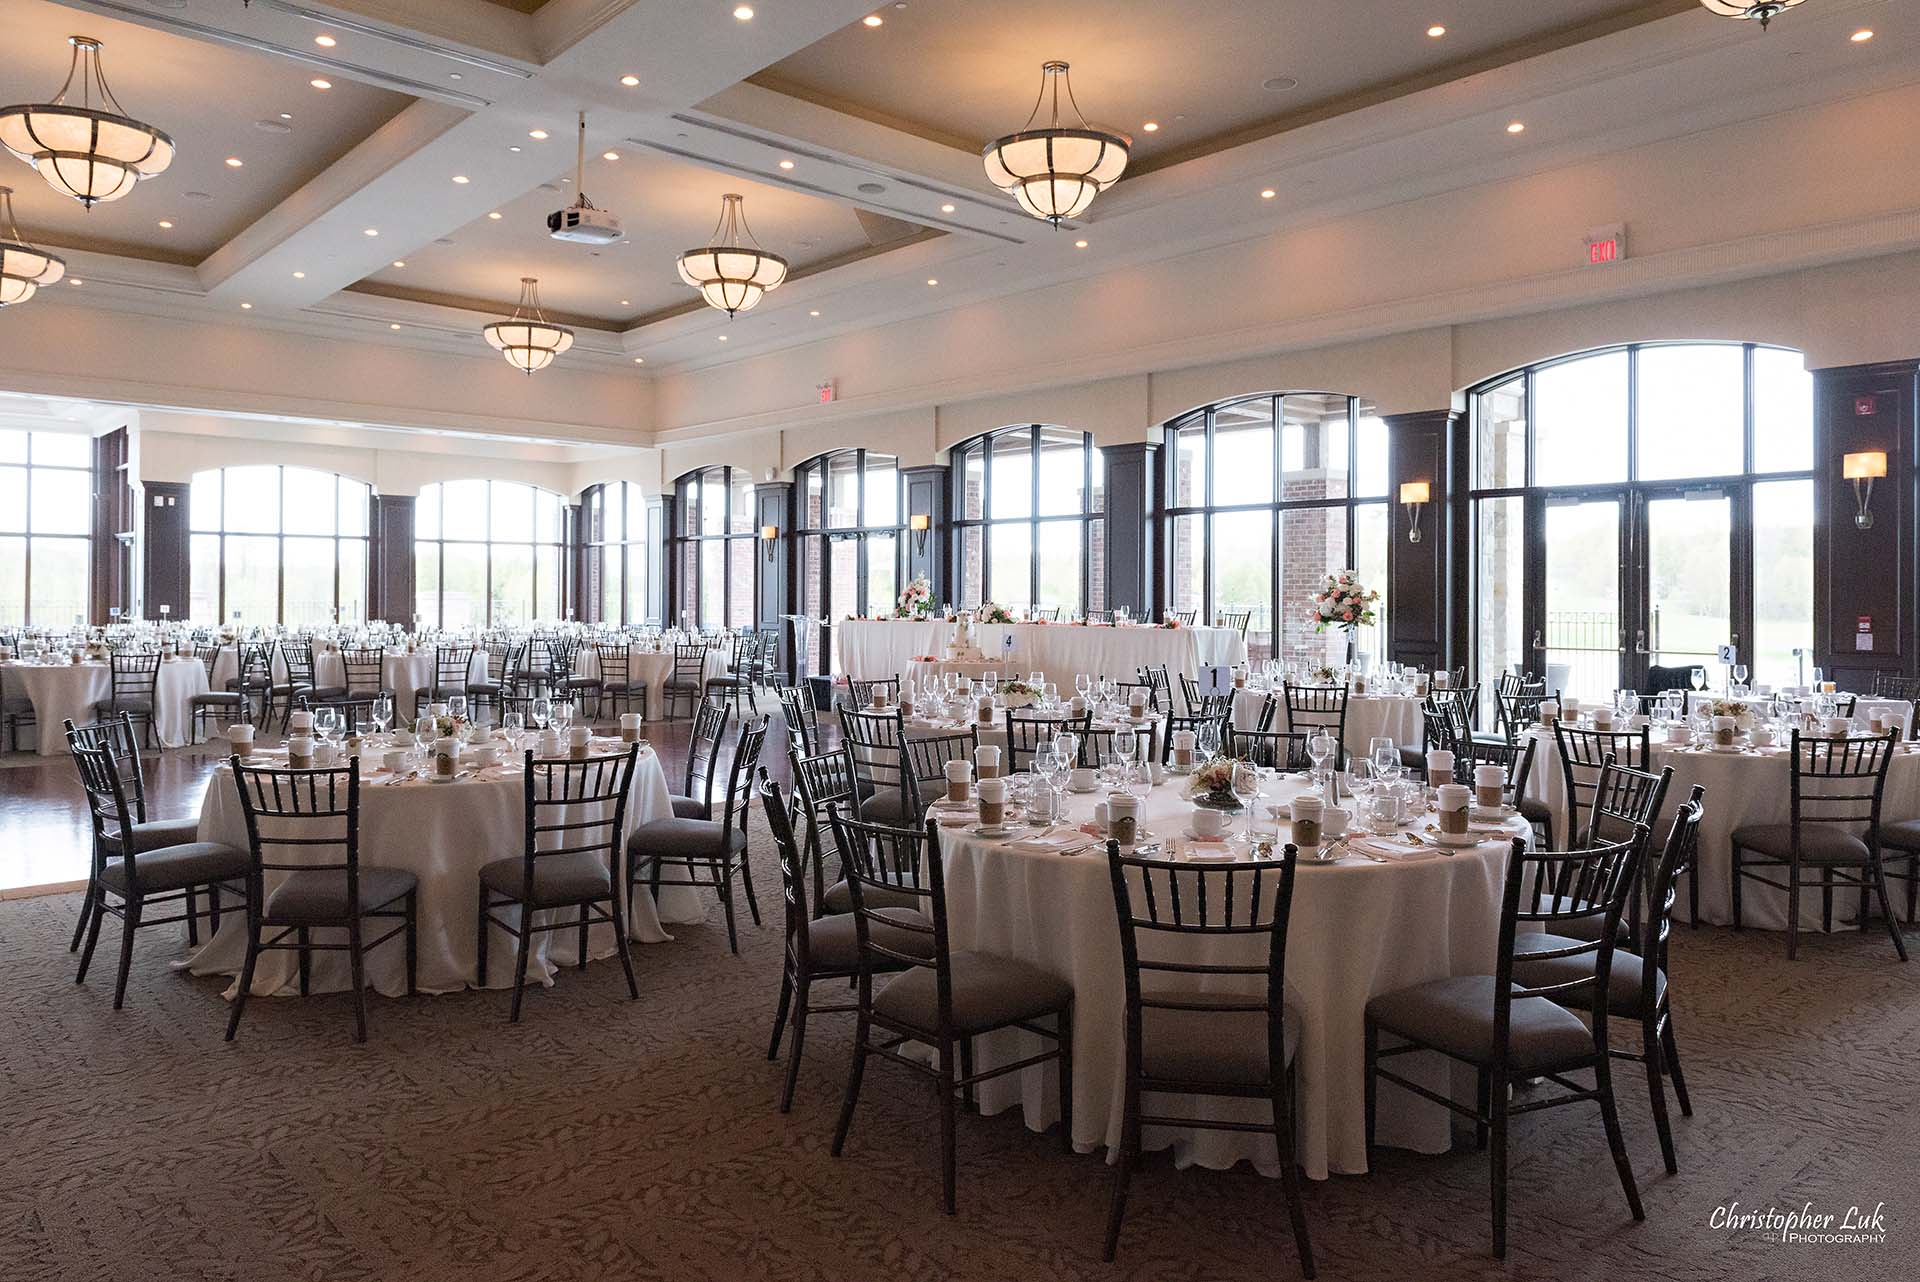 Christopher Luk Toronto Wedding Photographer Eagles Nest Golf Club Course Clubhouse Great Hall Dinner Reception Table Details Wide Angle